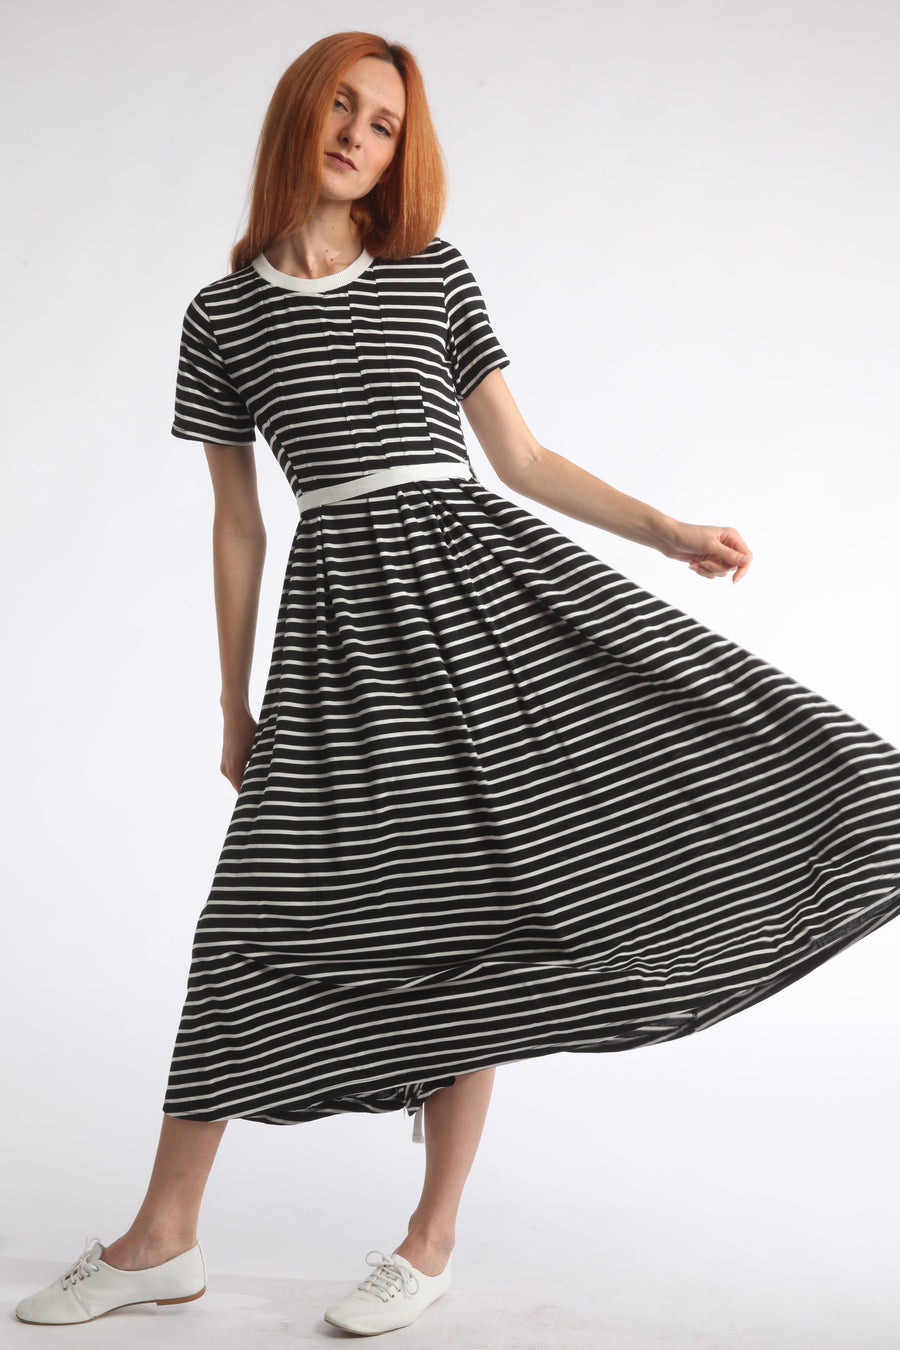 short sleeved striped dress